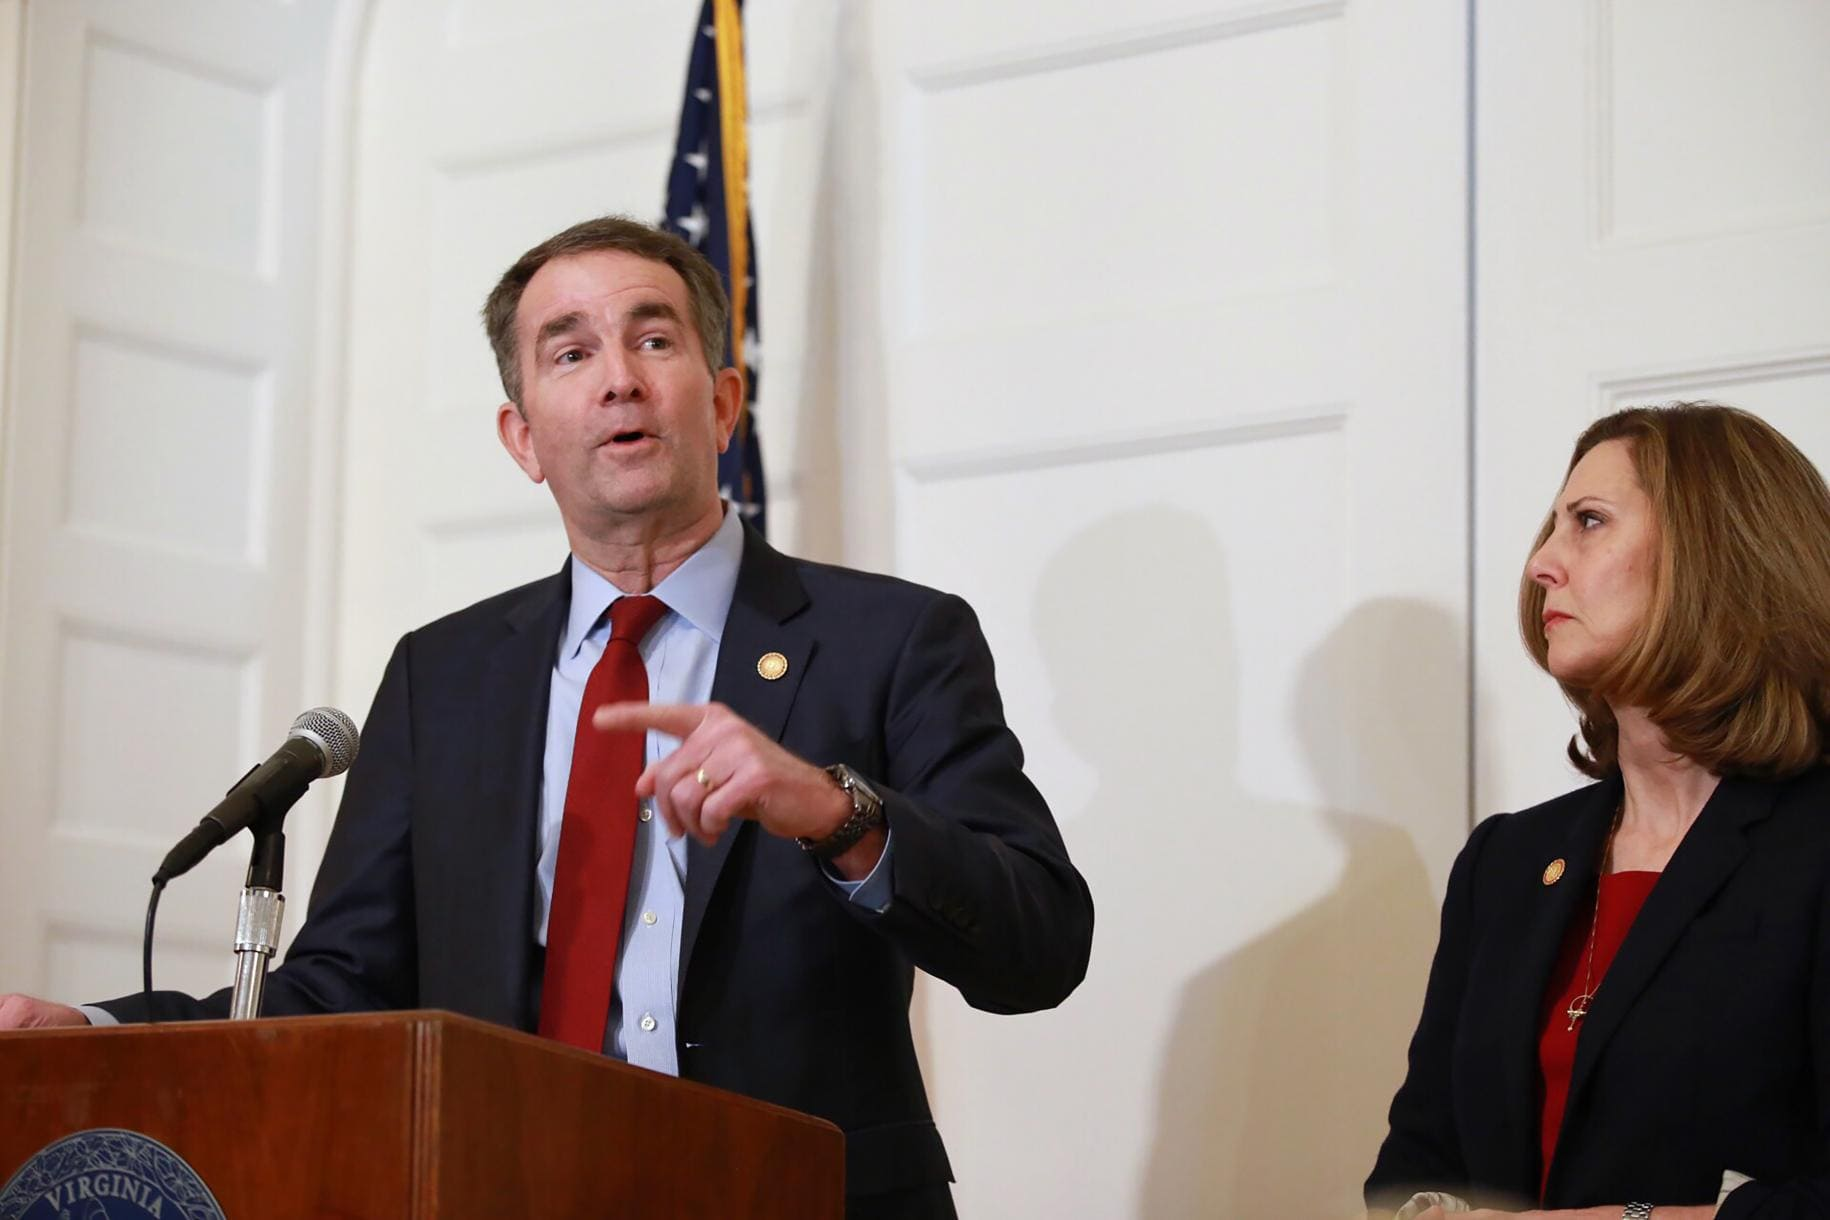 Ralph Northam Denies He's in Racist Photo, Voice for his Resignation Grow